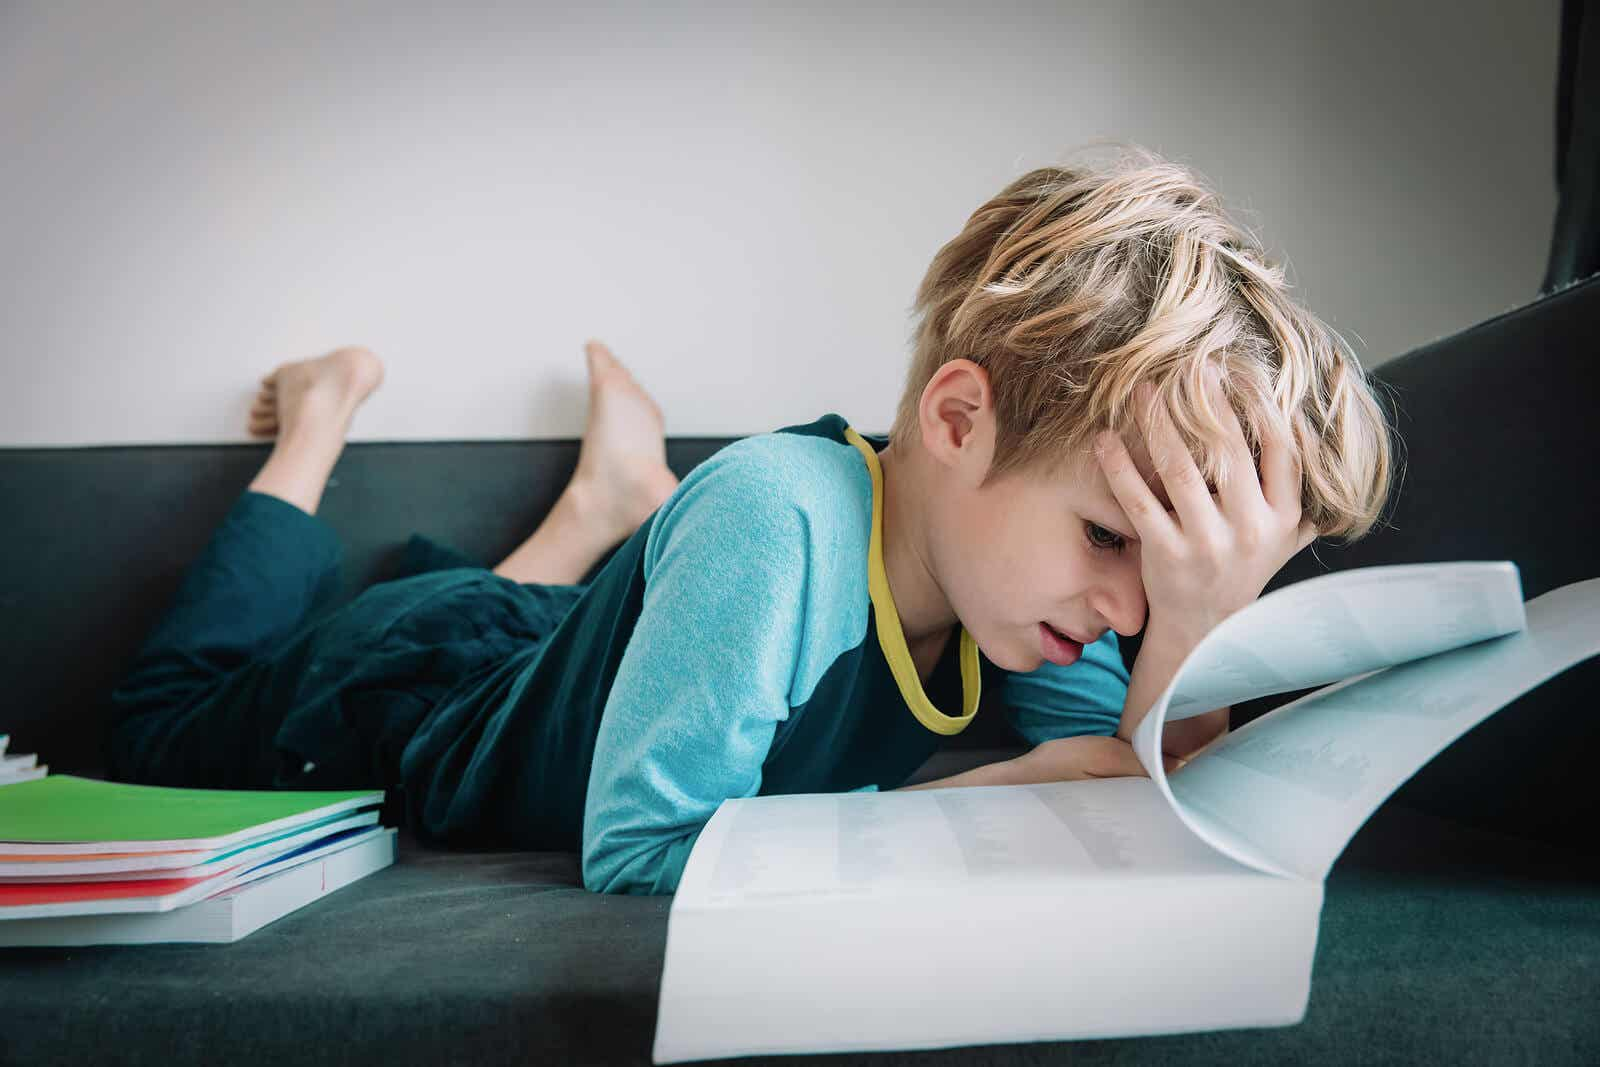 A child looking at a school book while with his head on his forehead, looking frustrated.